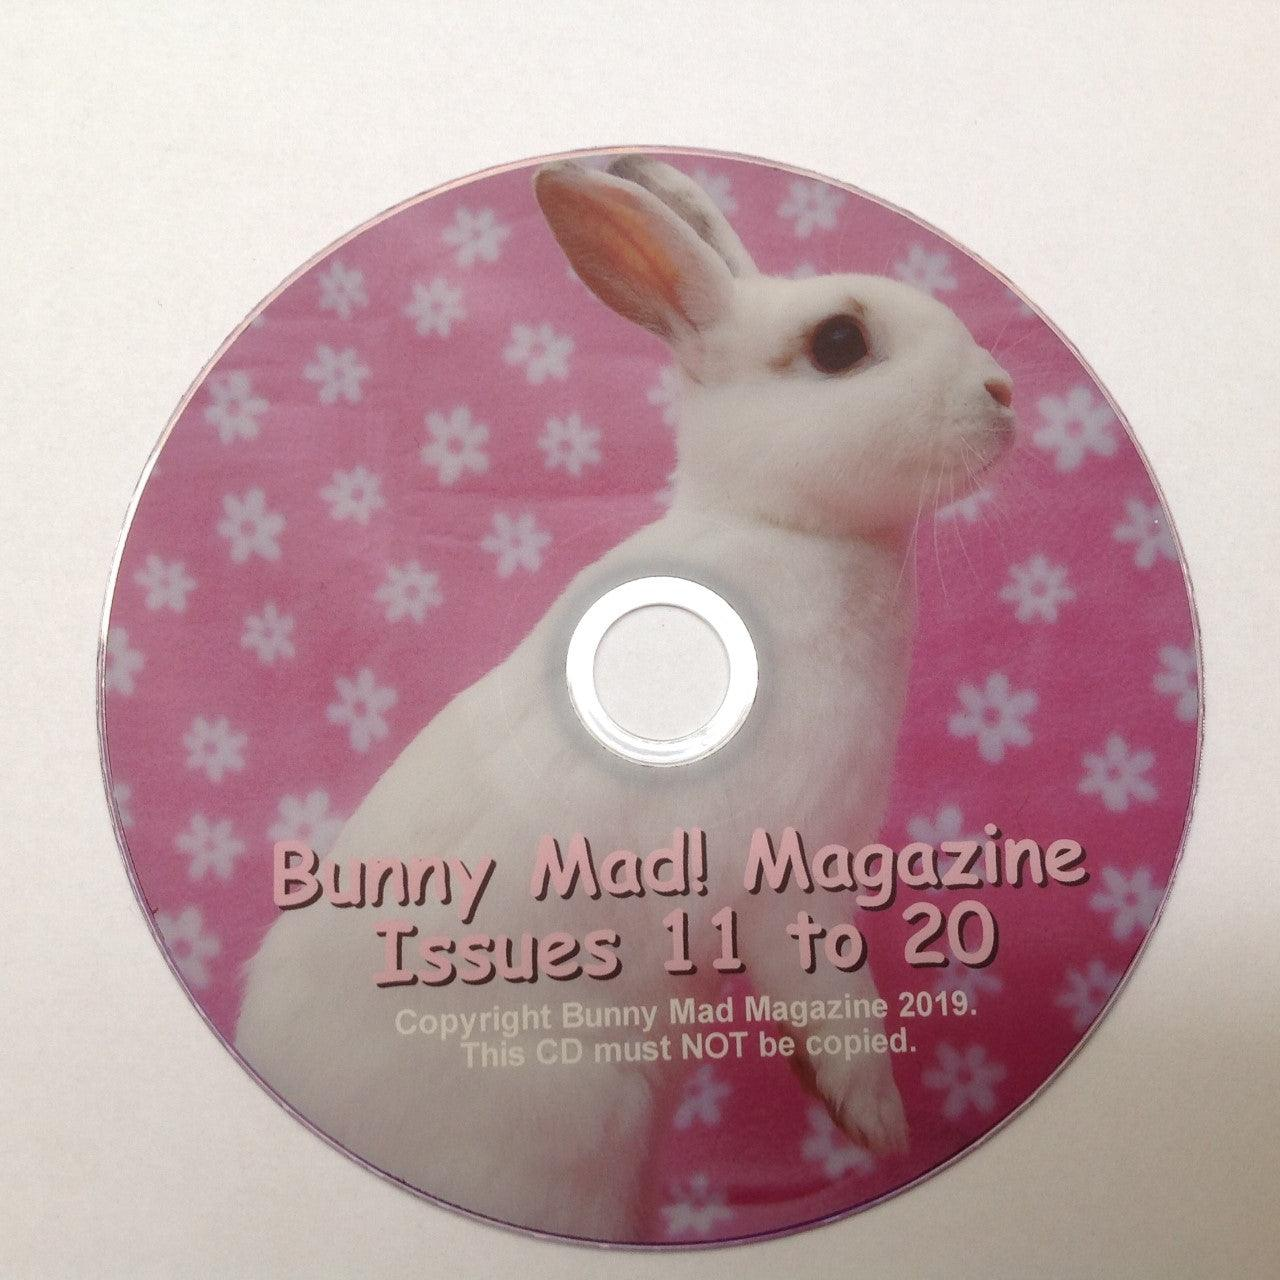 Bunny Mad Magazine: Issues 11-20 (DVD) To View On Your Computer